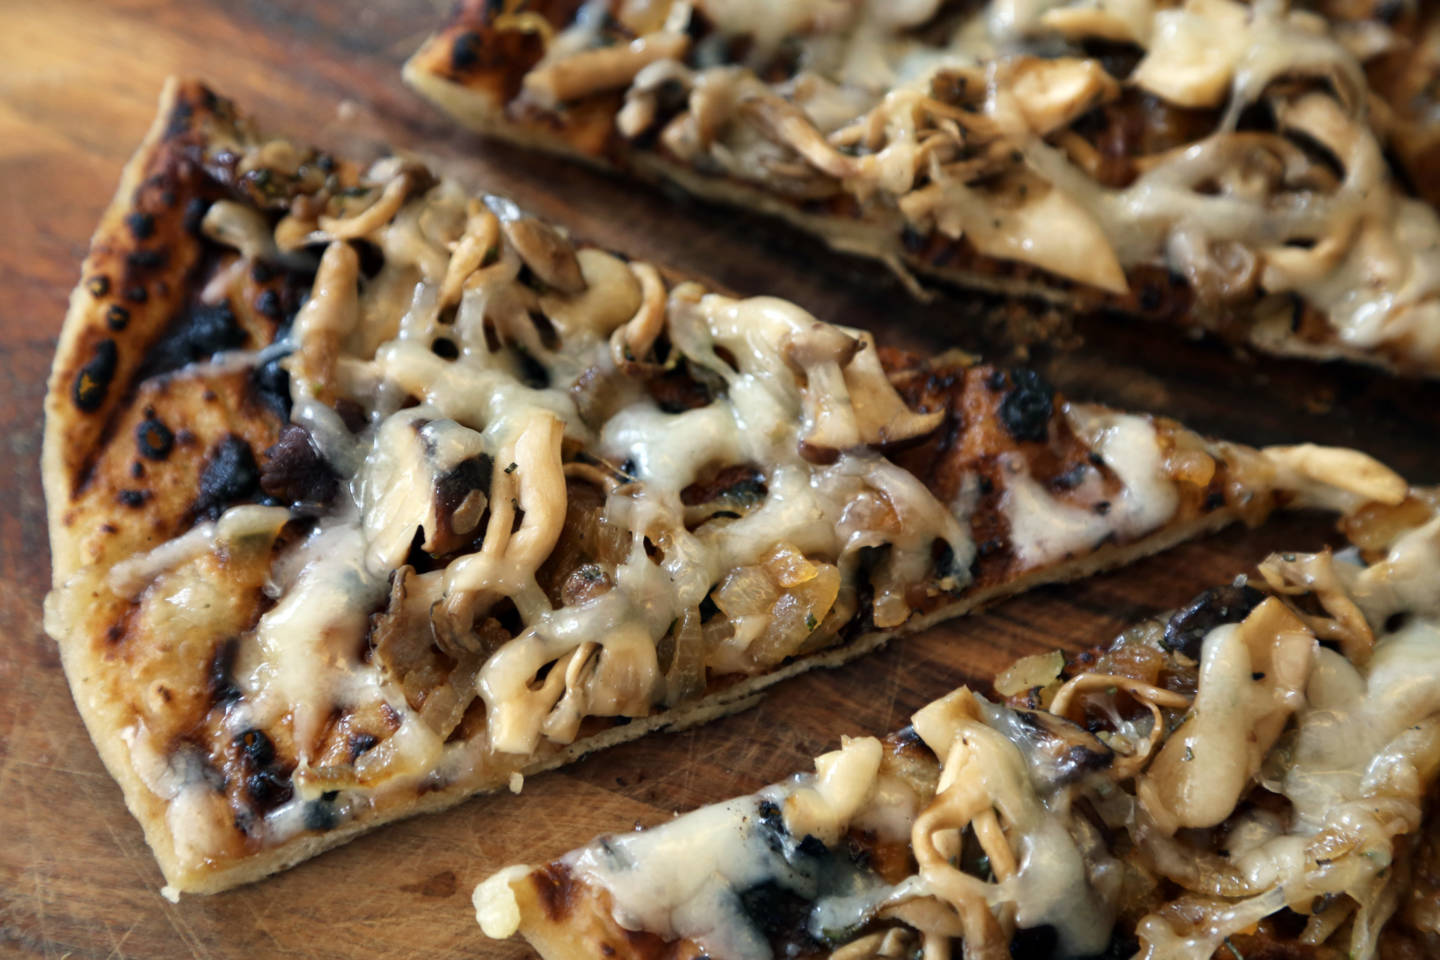 Grilled pizza with wild mushrooms, caramelized onions, and fontina Wendy Goodfriend